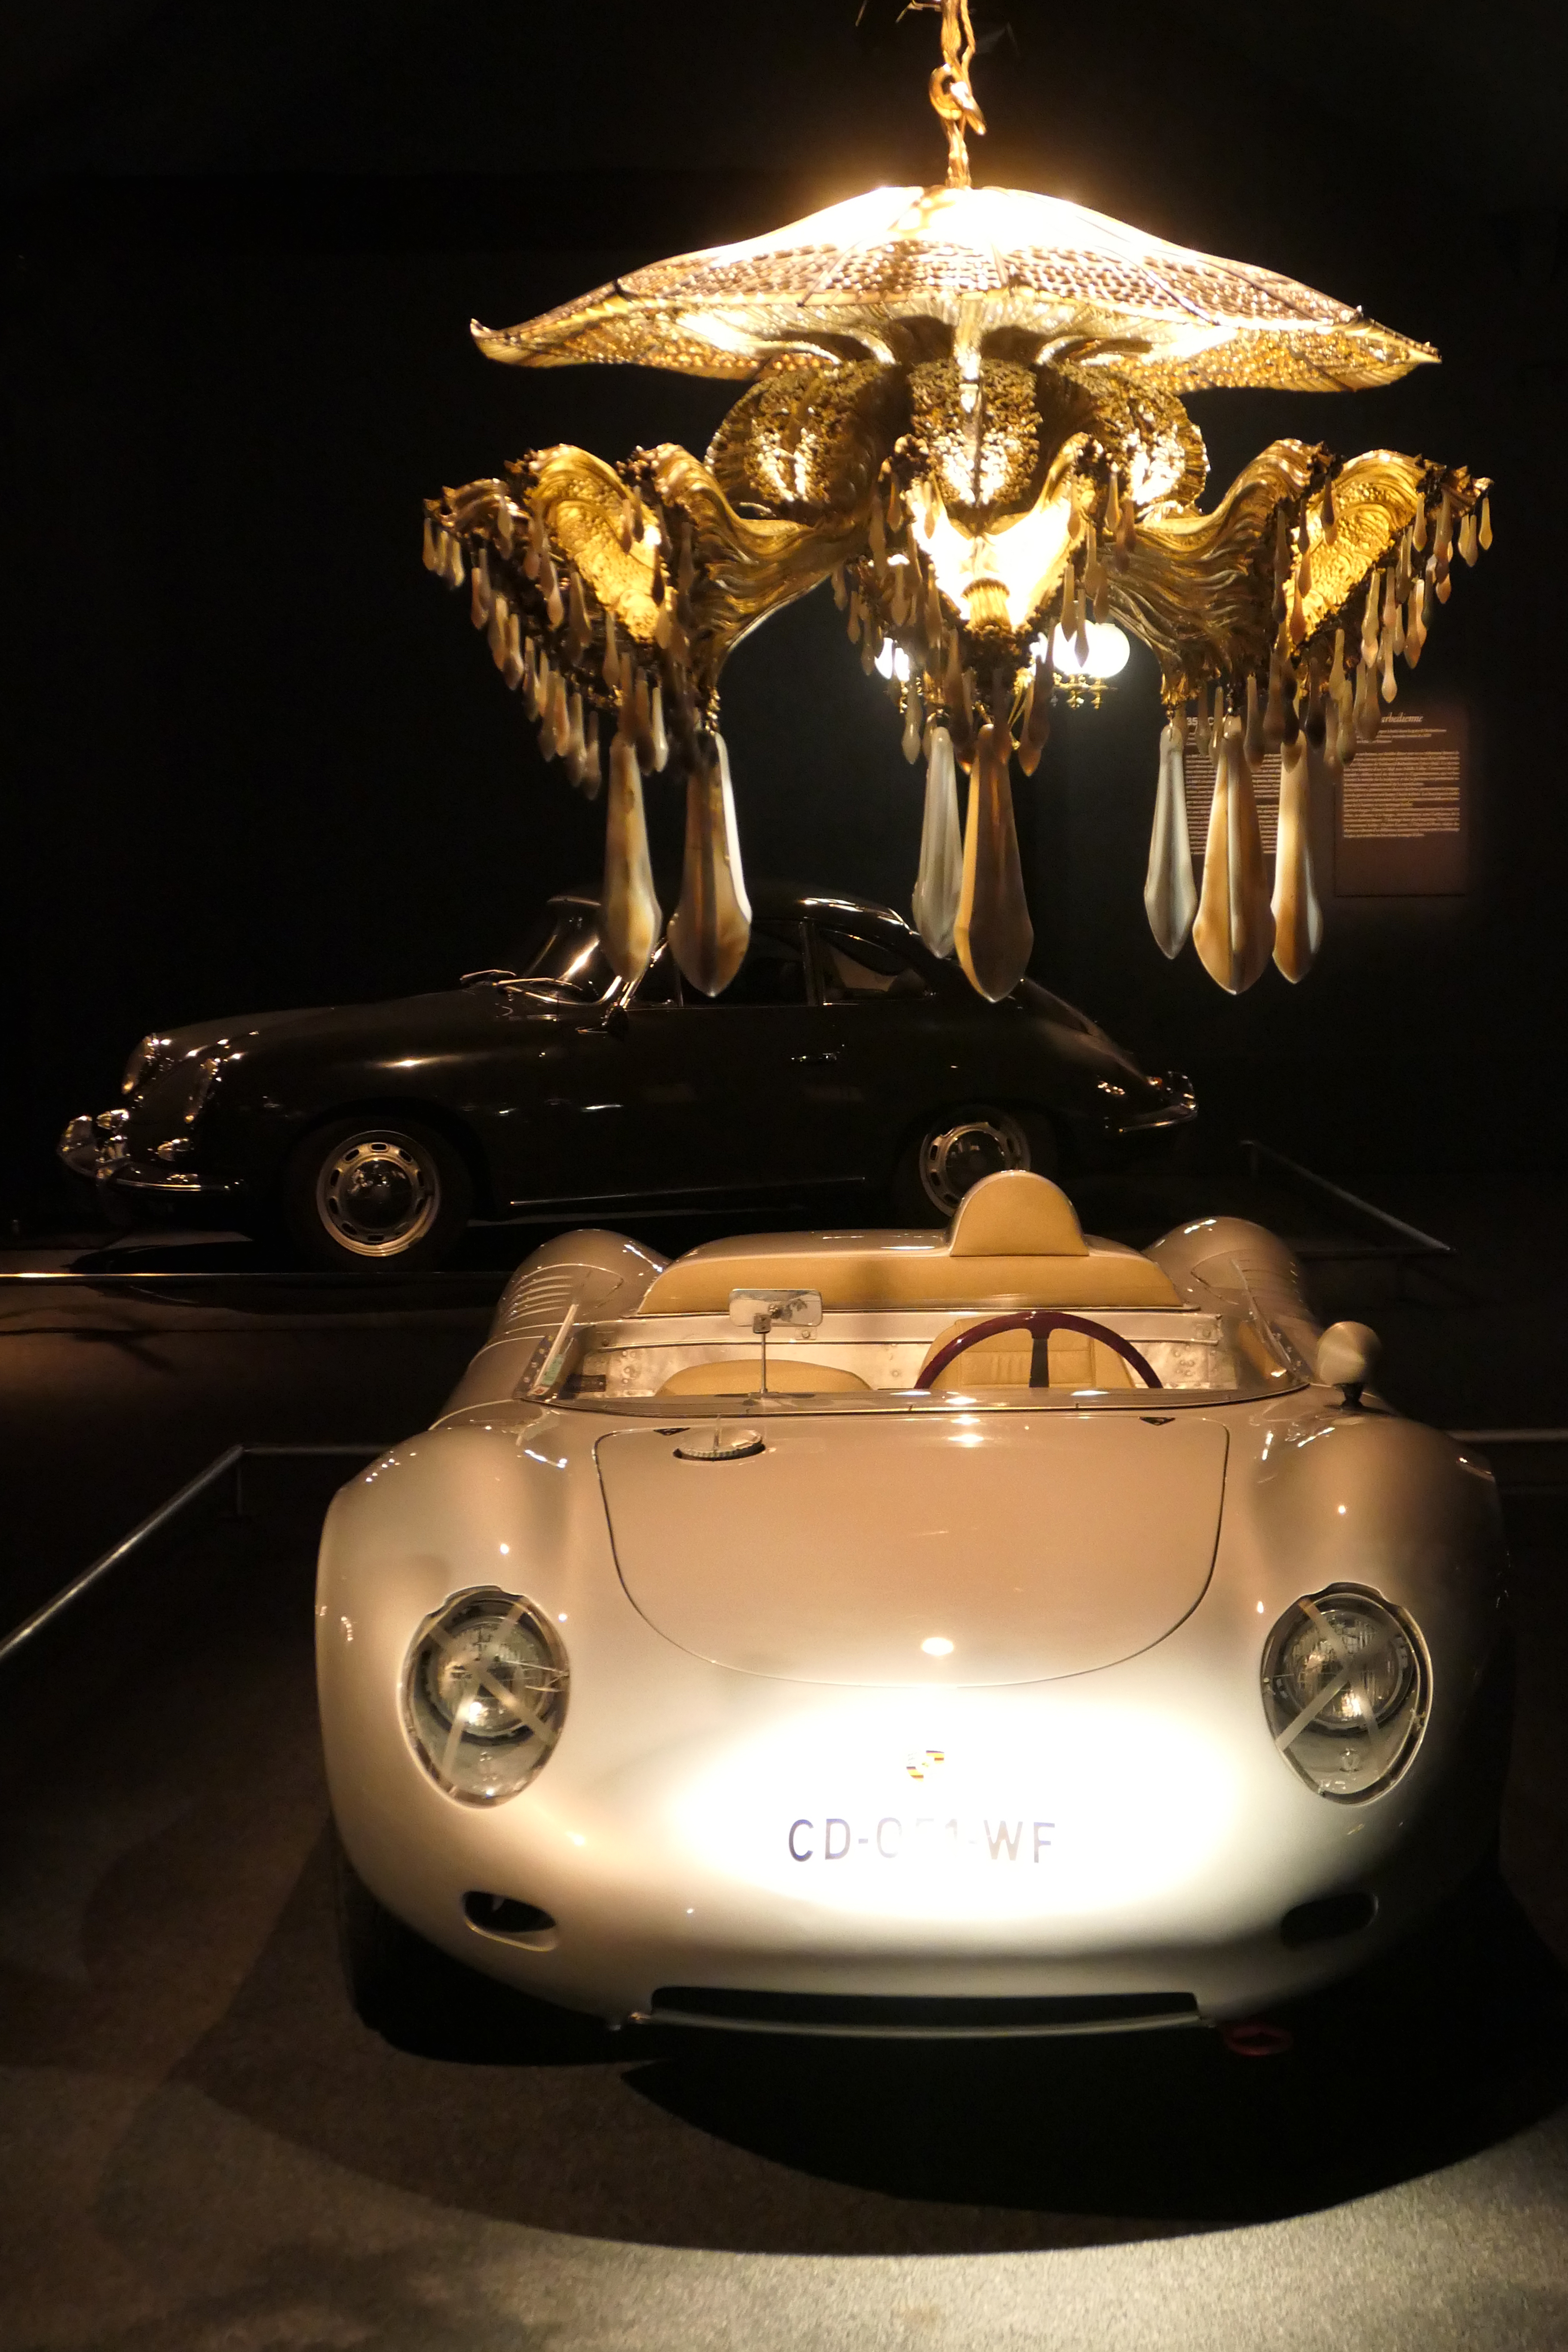 Porsche 718 RSK under the jellyfish chandelier exposition exhibition regis mathieu cite de l'automobile mulhouse collection schlumpf road rug cars roadrugcars brothers car voiture auto automobile vintage car super car hyper car